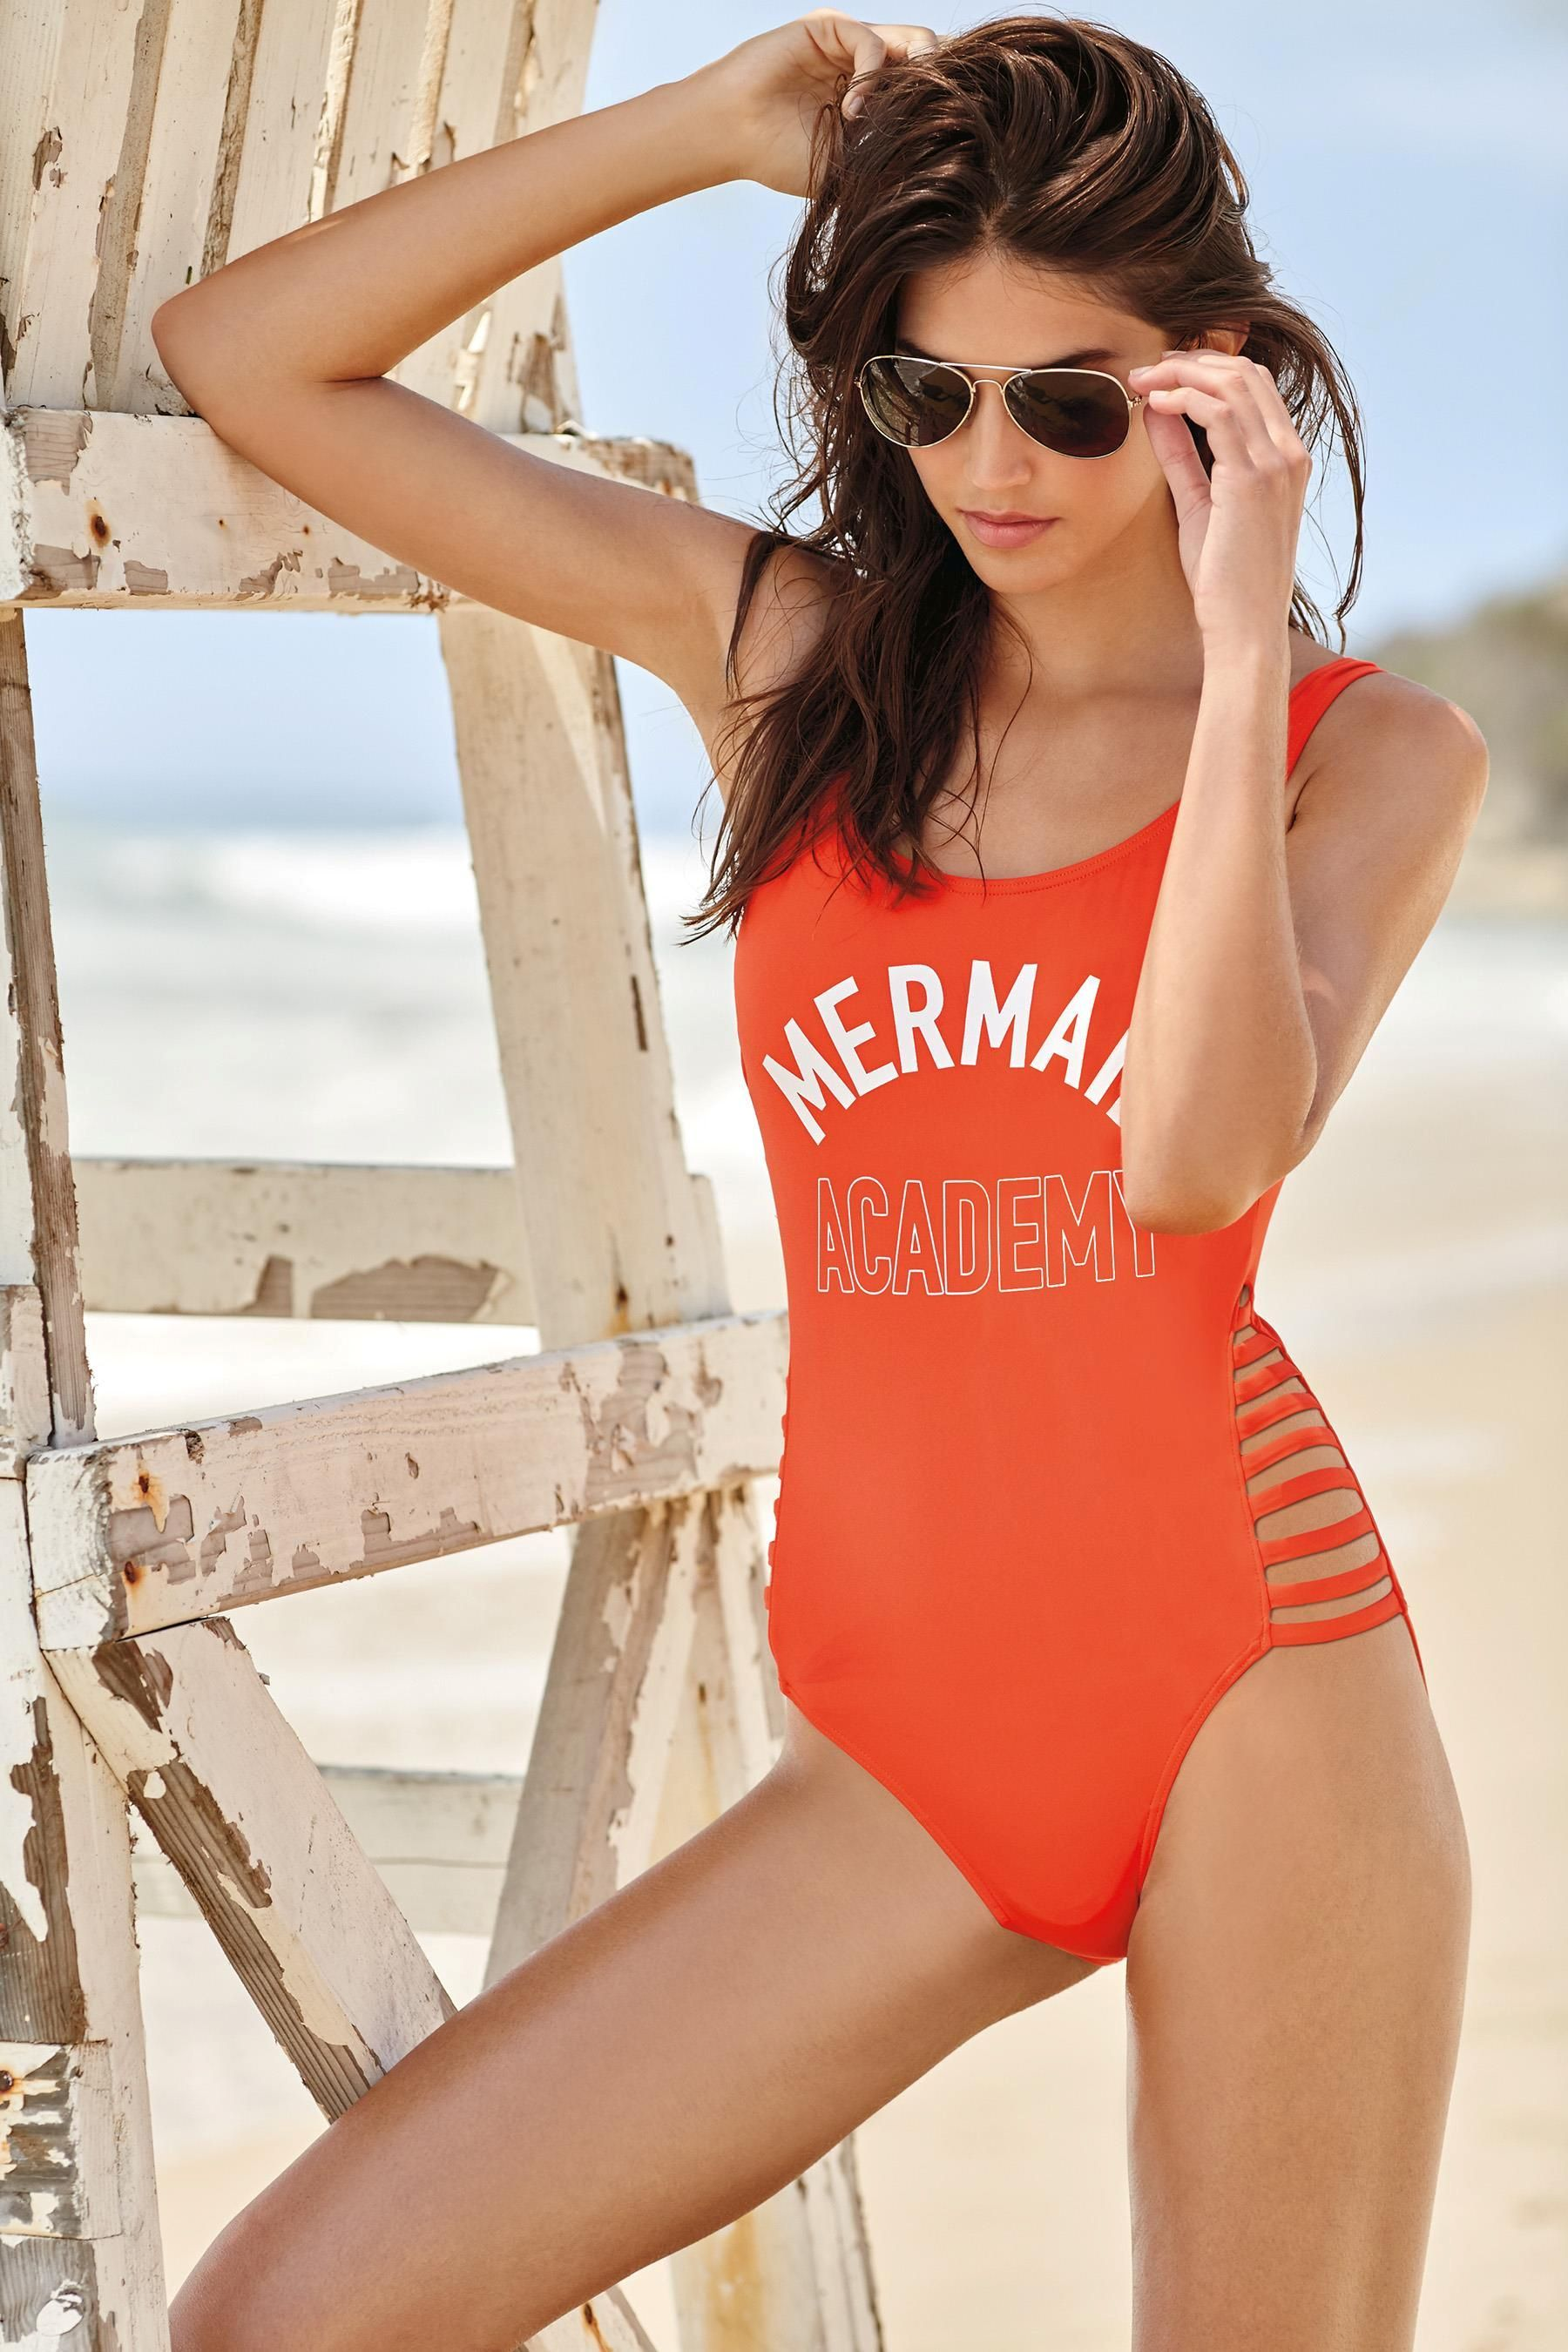 17cfa6736b4f Red Mermaid Slogan Swimsuit from the Next UK online shop